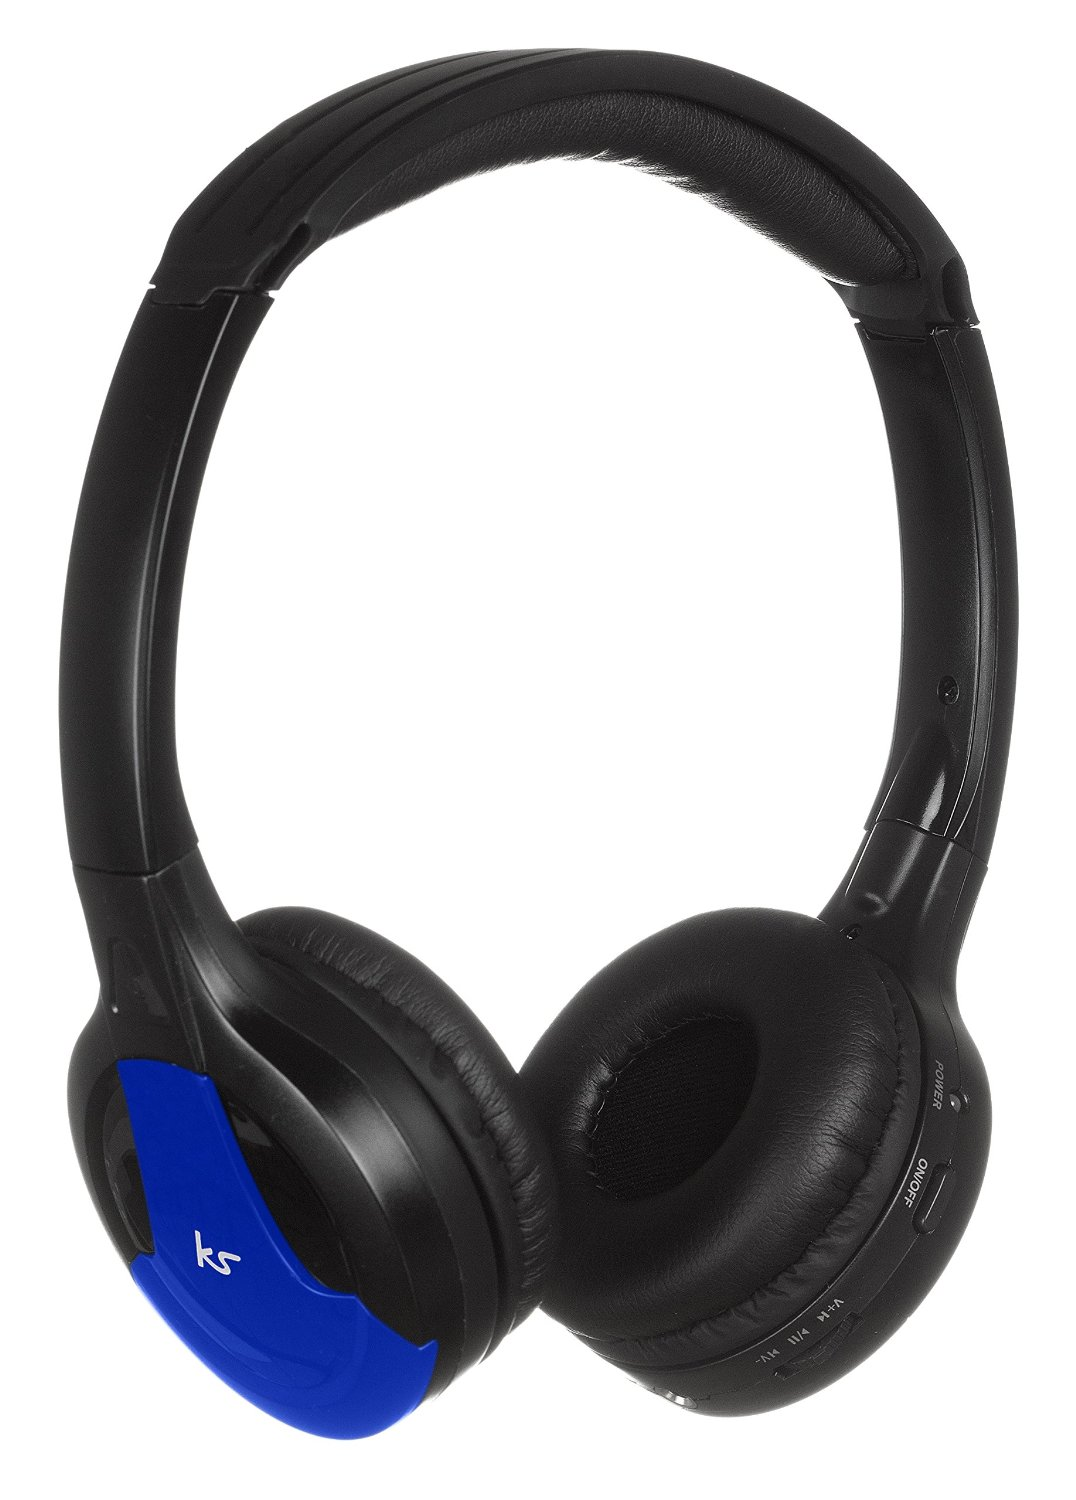 896d9d8b240 81Uy9aSna8L._SL1500_. The Arcades are an exceptional Bluetooth headphone ...